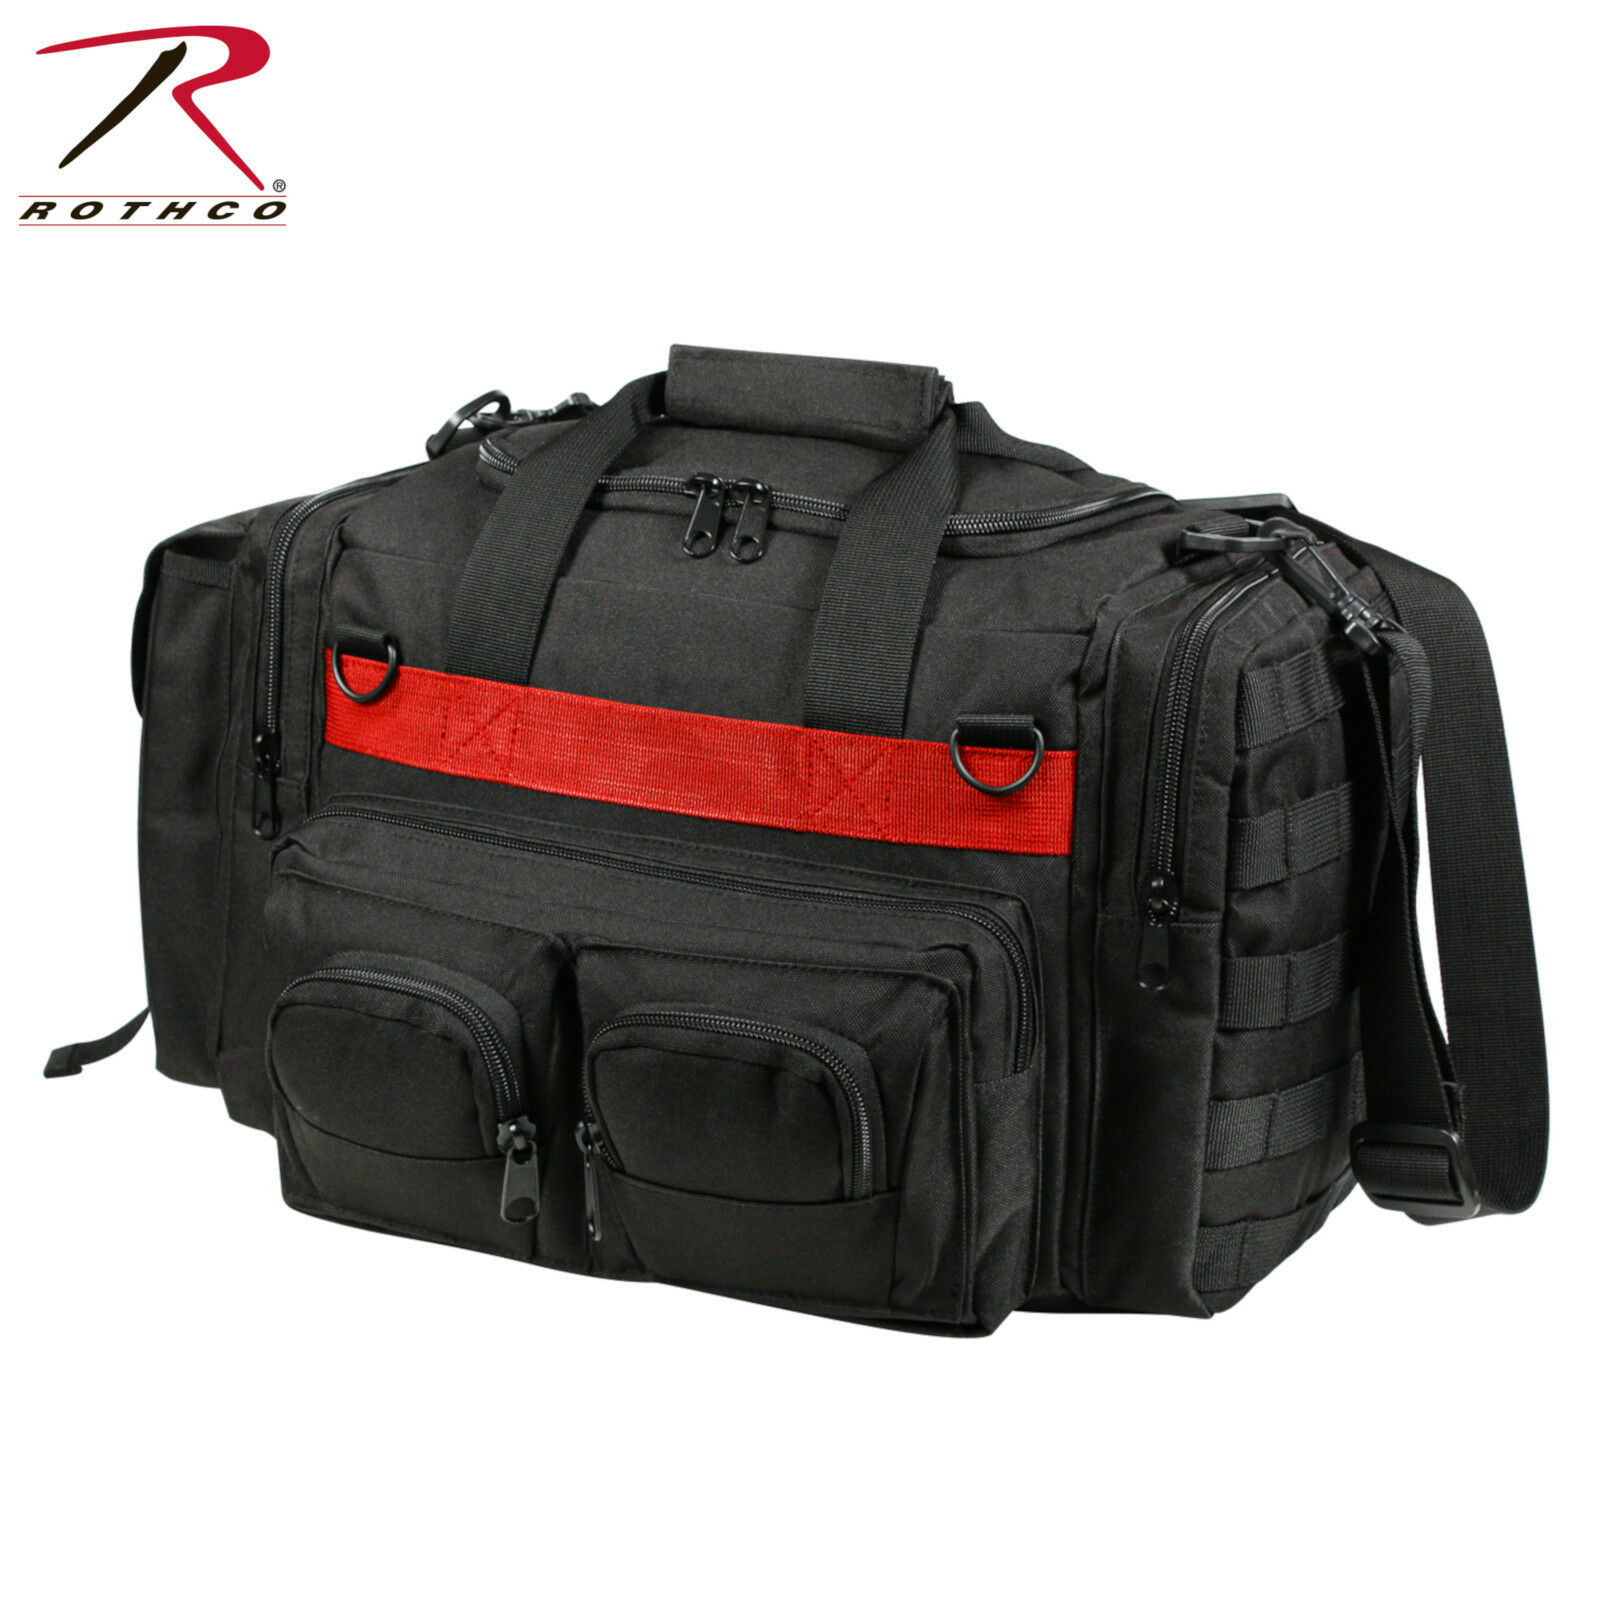 redhco Thin Red Line Concealed Carry Bag - TRL  Fire Department CCW Gear Duty Bag  high discount